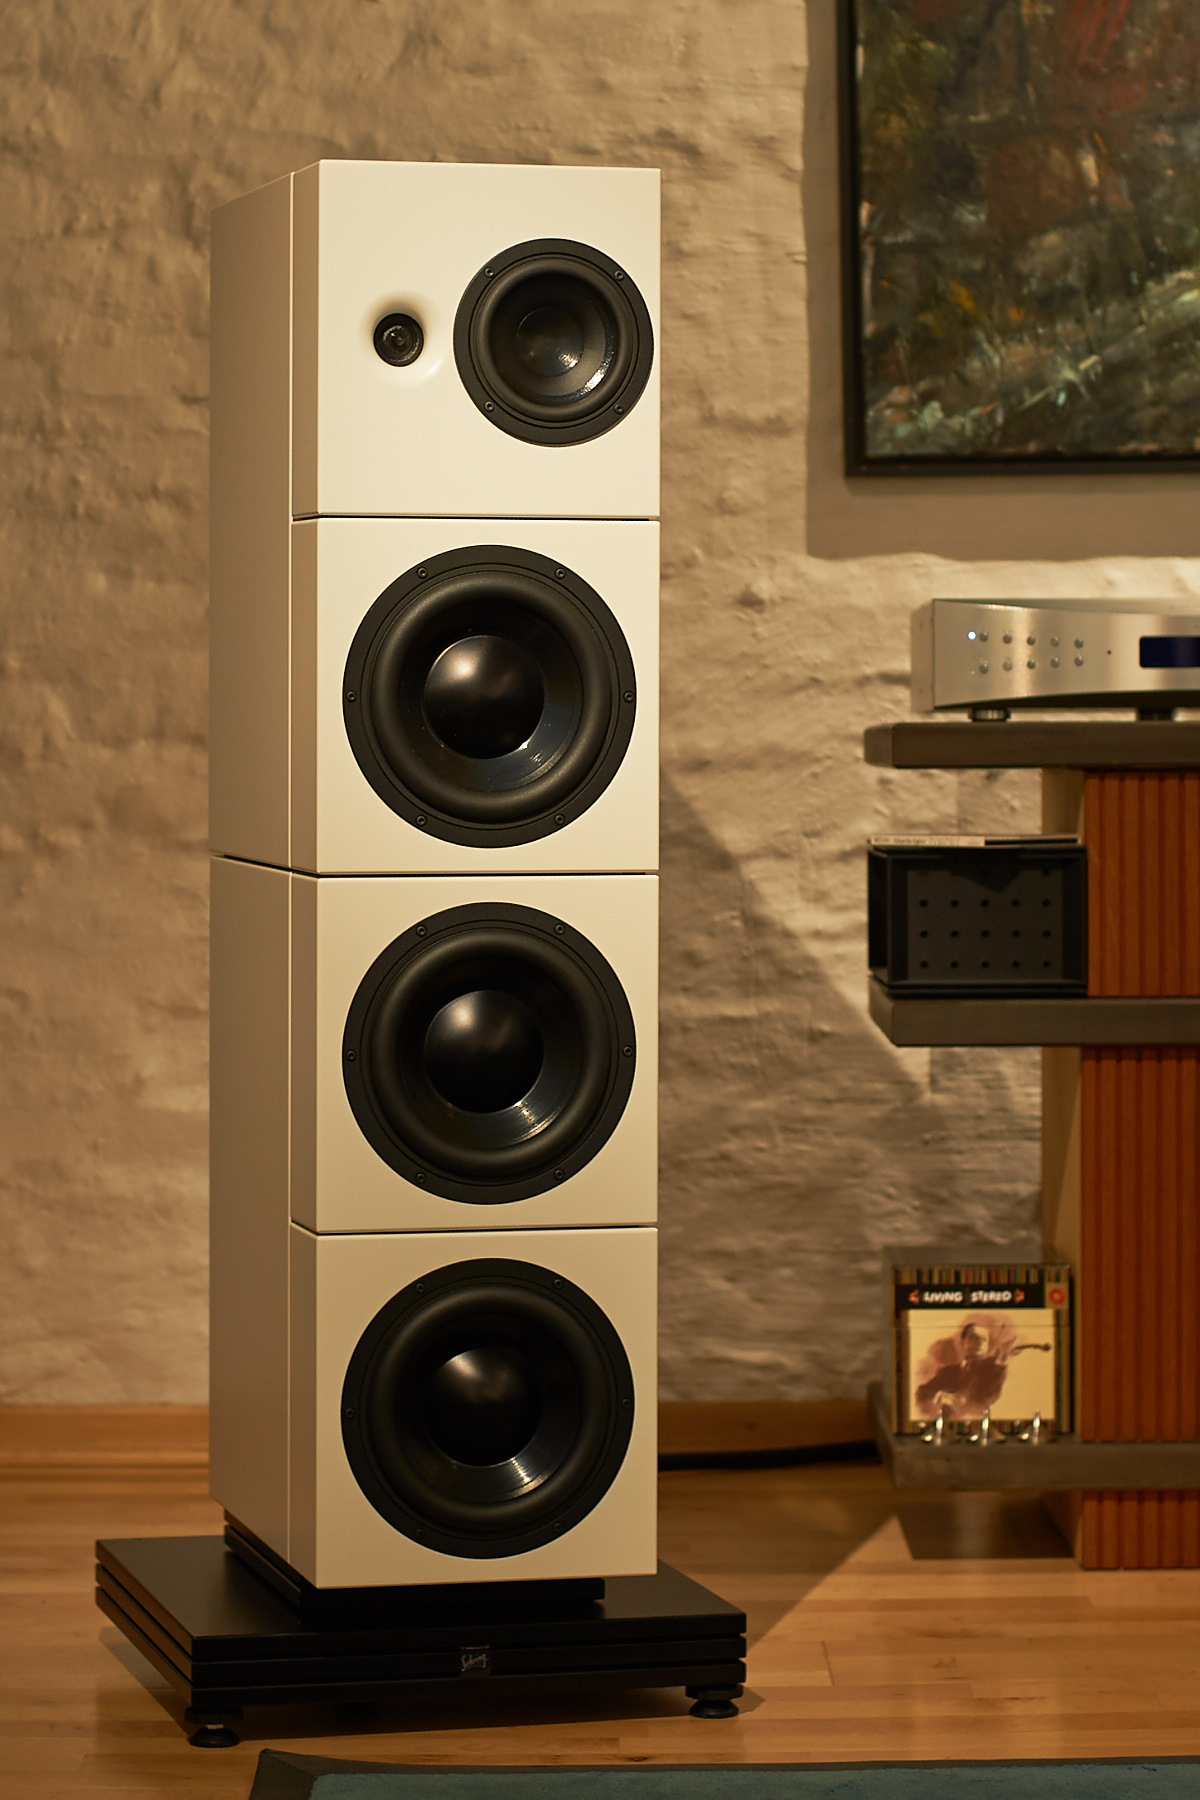 Sehring Audio Systeme Serie 900, Modell 903 B, Mittel-Hochtonmodul 90°